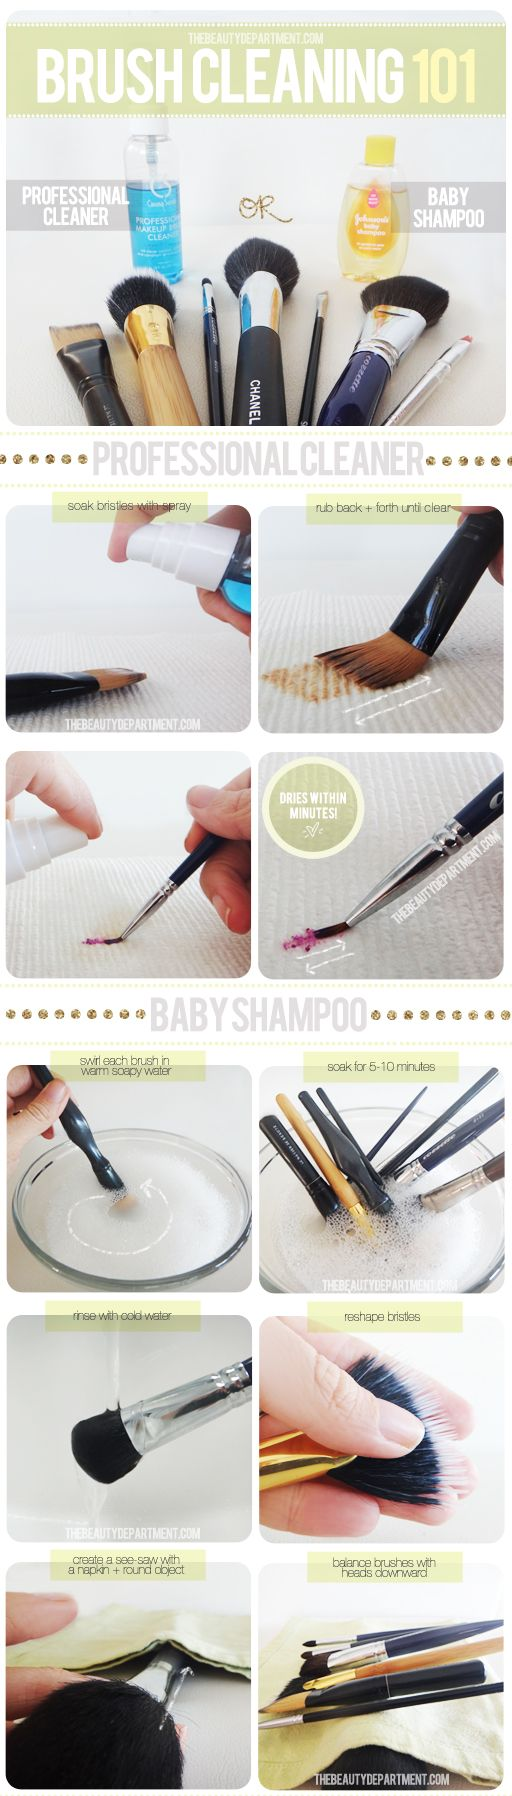 HOW TO PROPERLY WASH YOUR BRUSHES